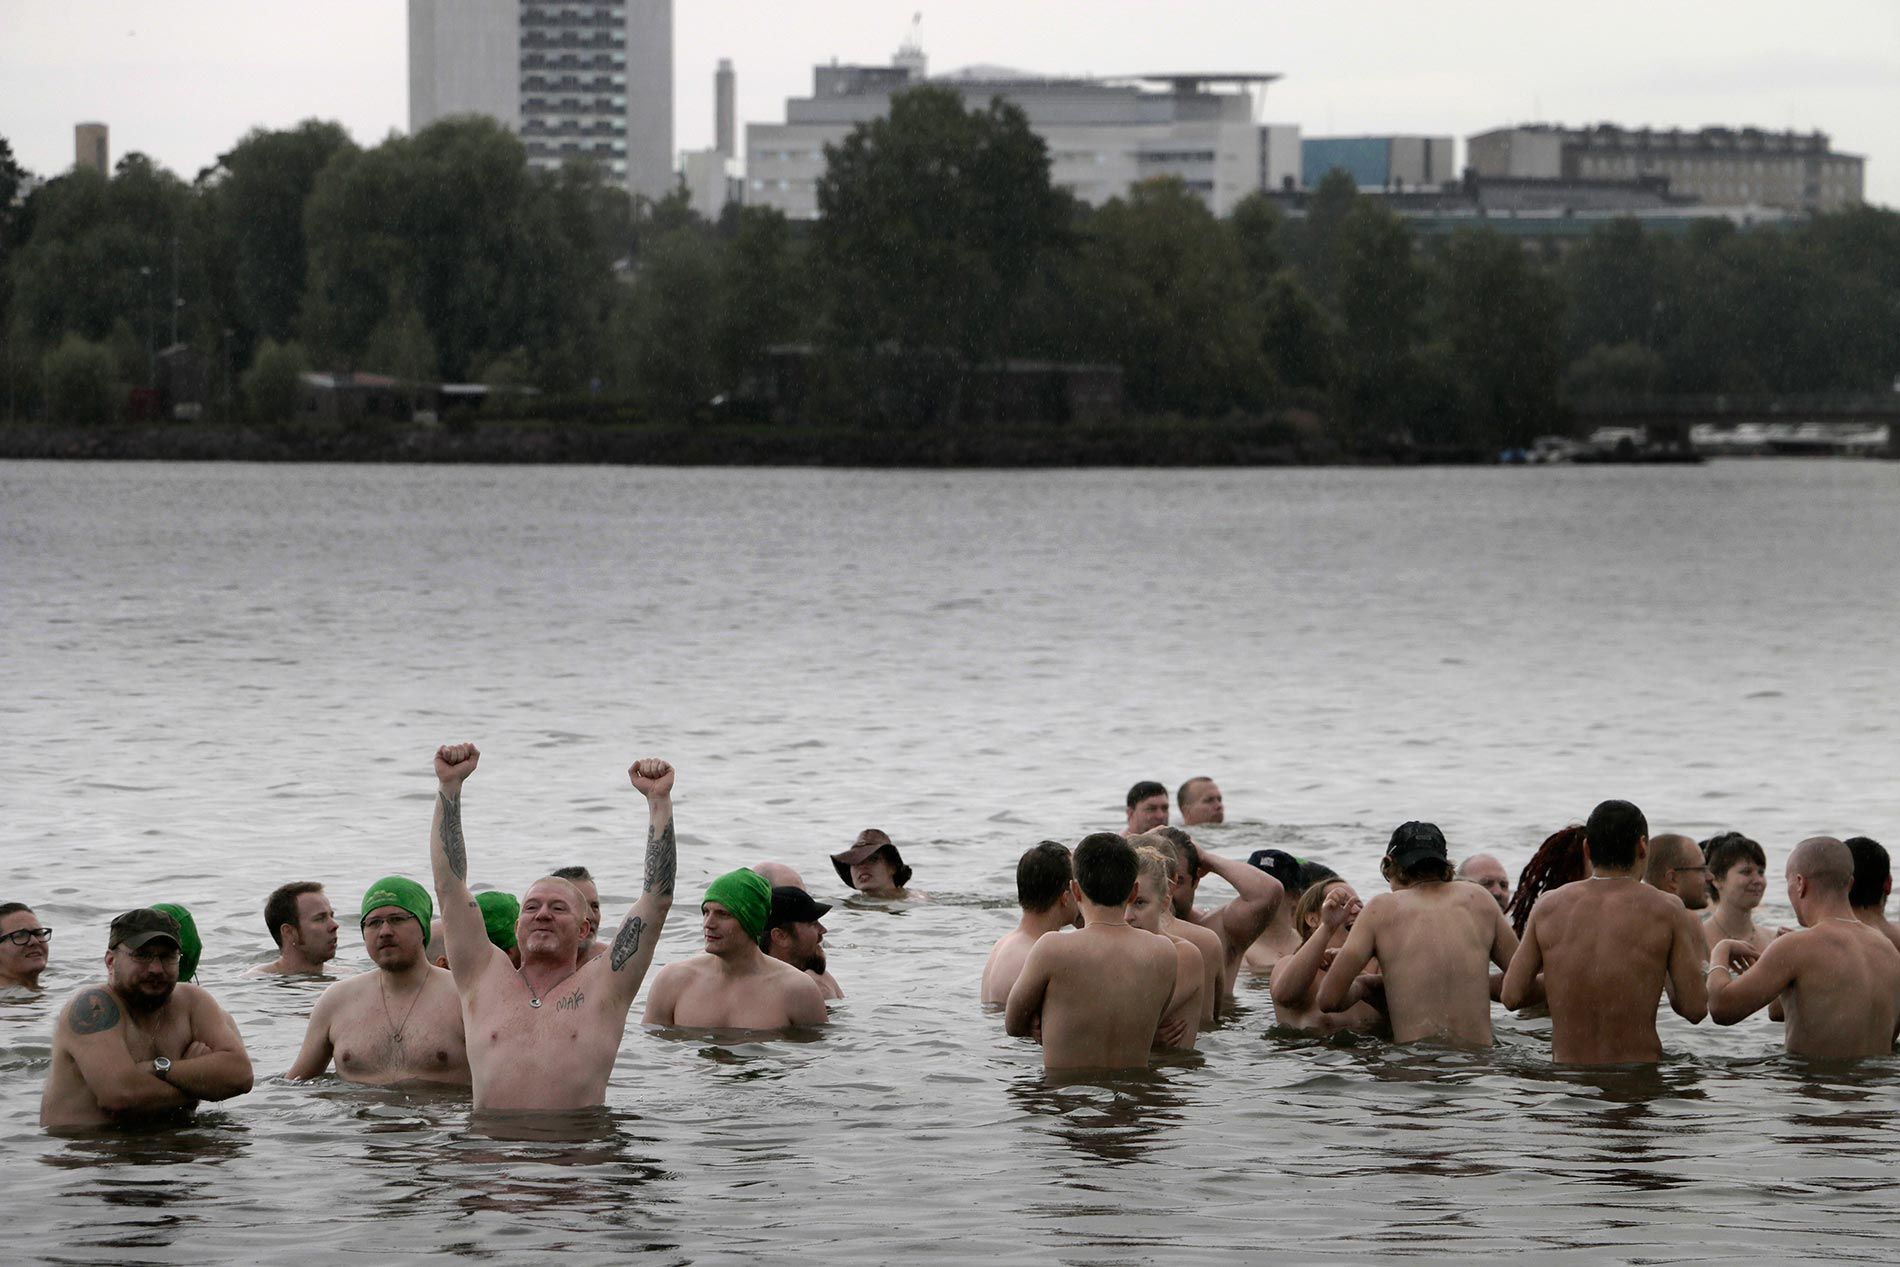 Hundreds gather to attempt Guinness World Record in Nude Swimming in Helsinki